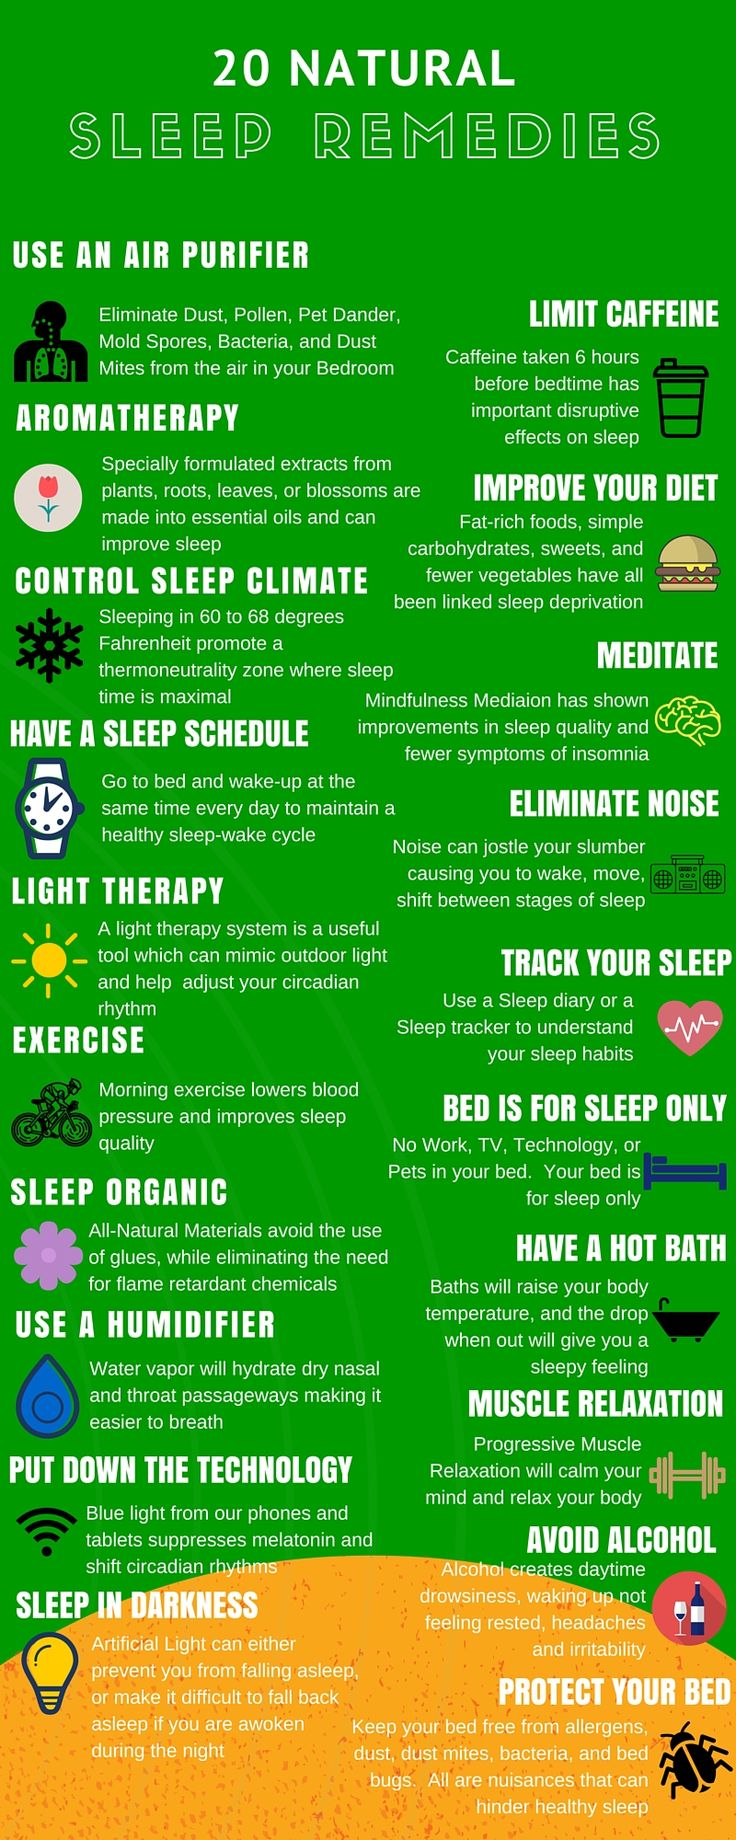 Twenty of the most effective natural sleep remedies to deal with sleeplessness or sleep deprivation.  Millions of people have formed poor sleep habits over time, and jump to prescription sleep aids which can be addictive.  Use all natural methods to improve your sleep quality.